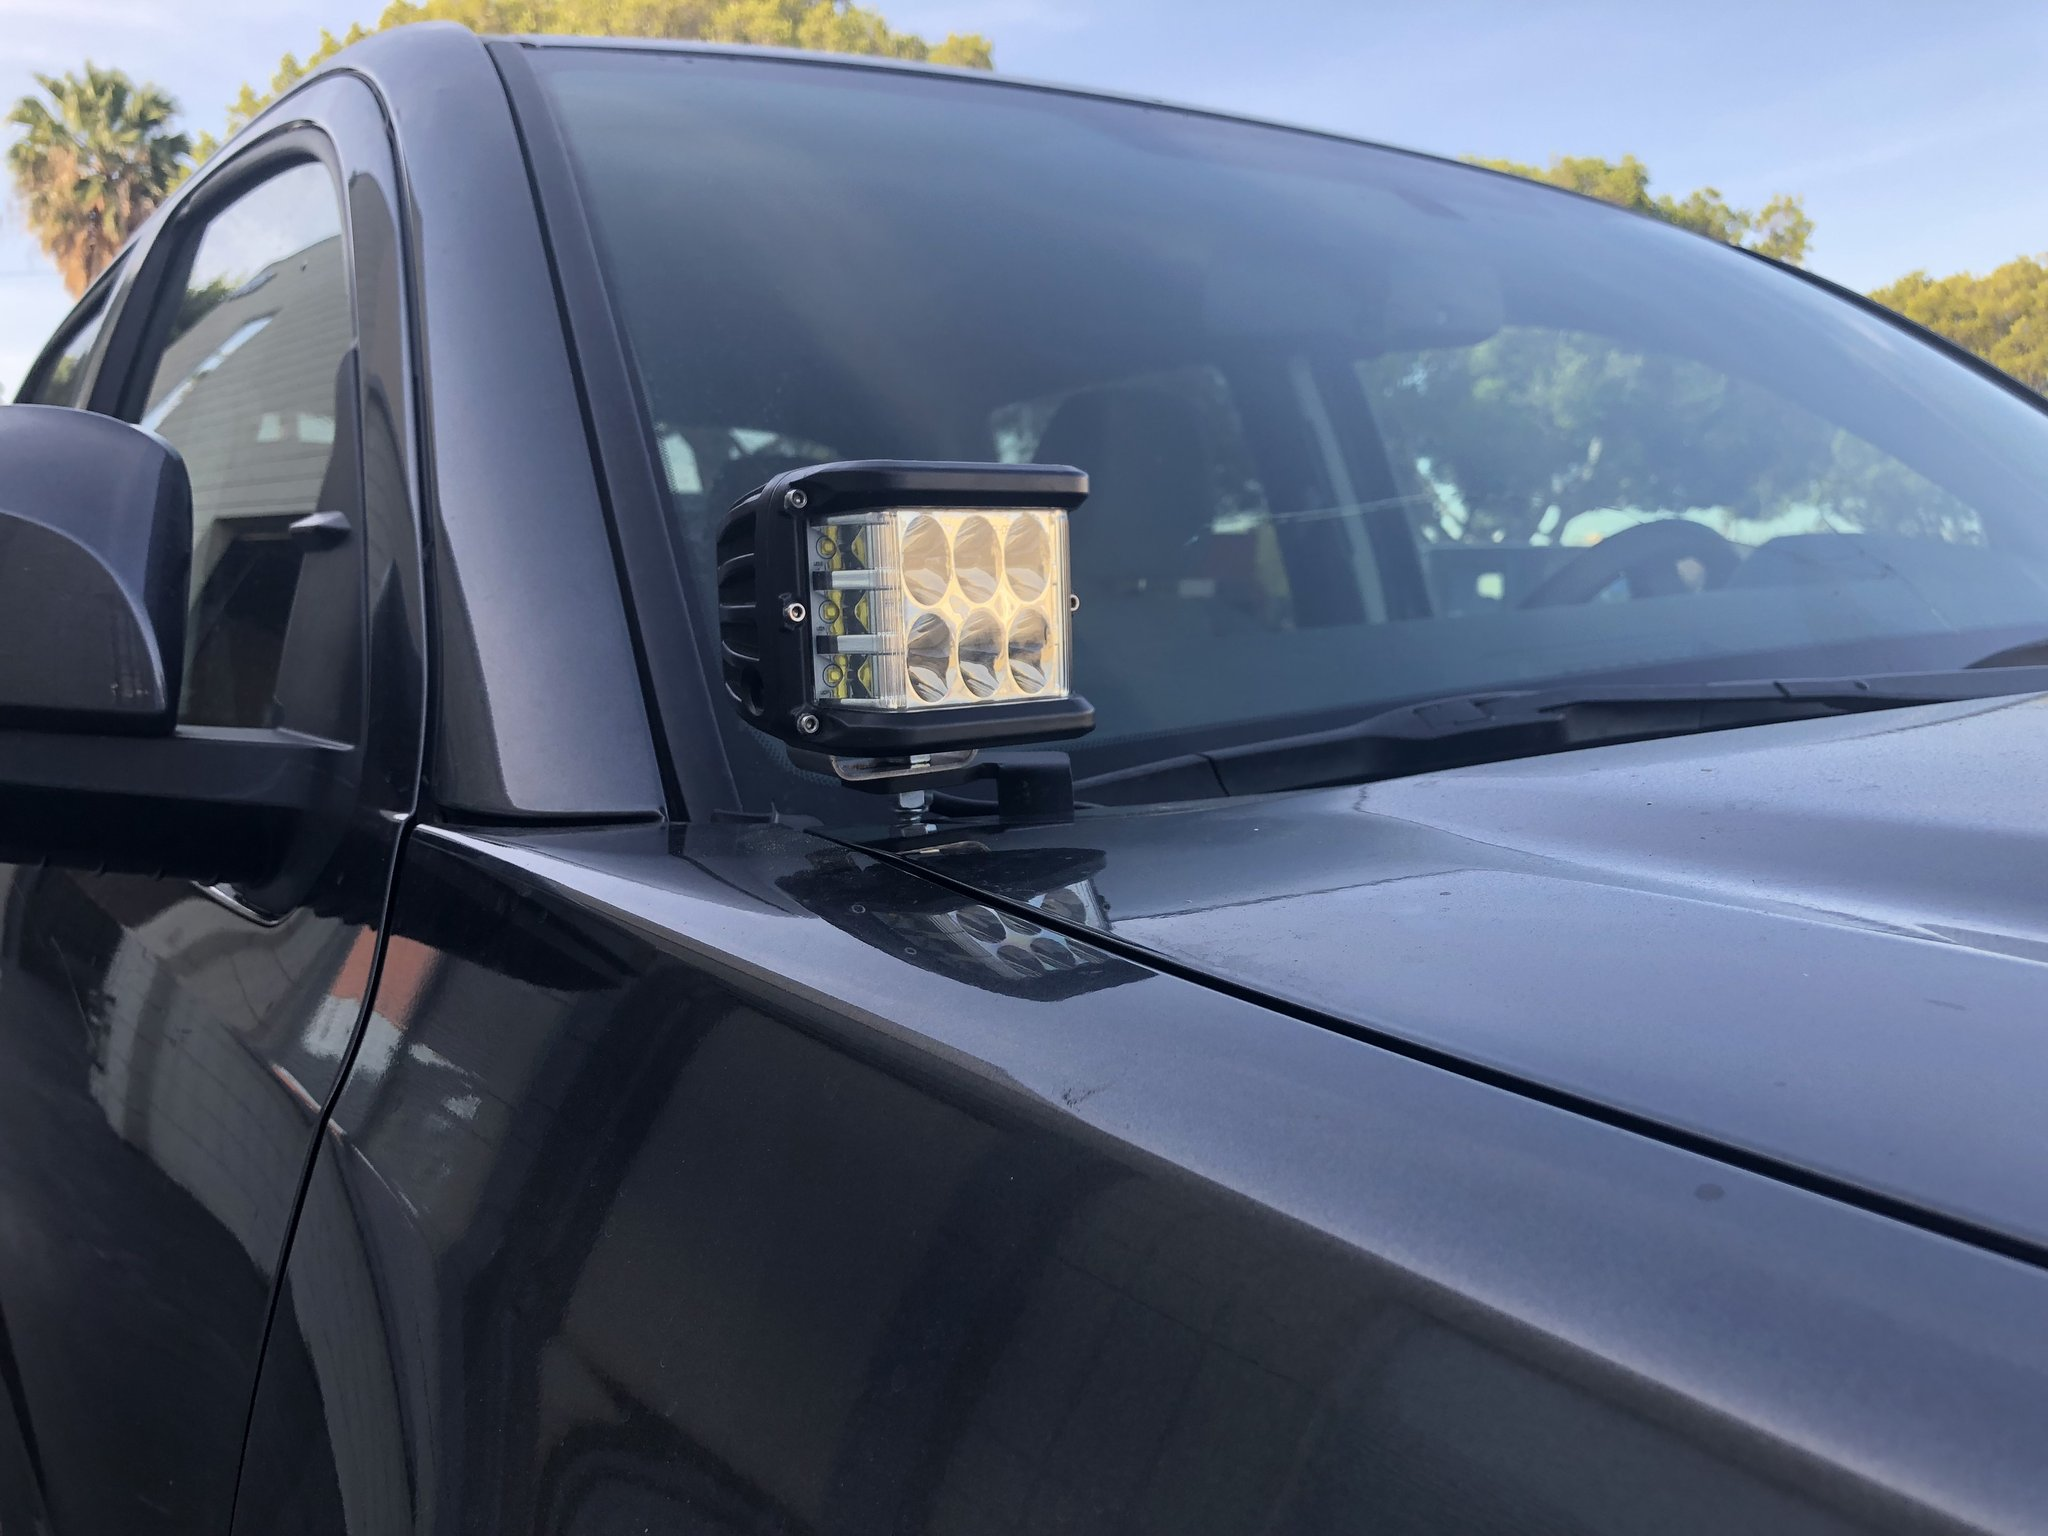 Cali Raised Toyota Tundra Low Profile Ditch Light Combo 2014+